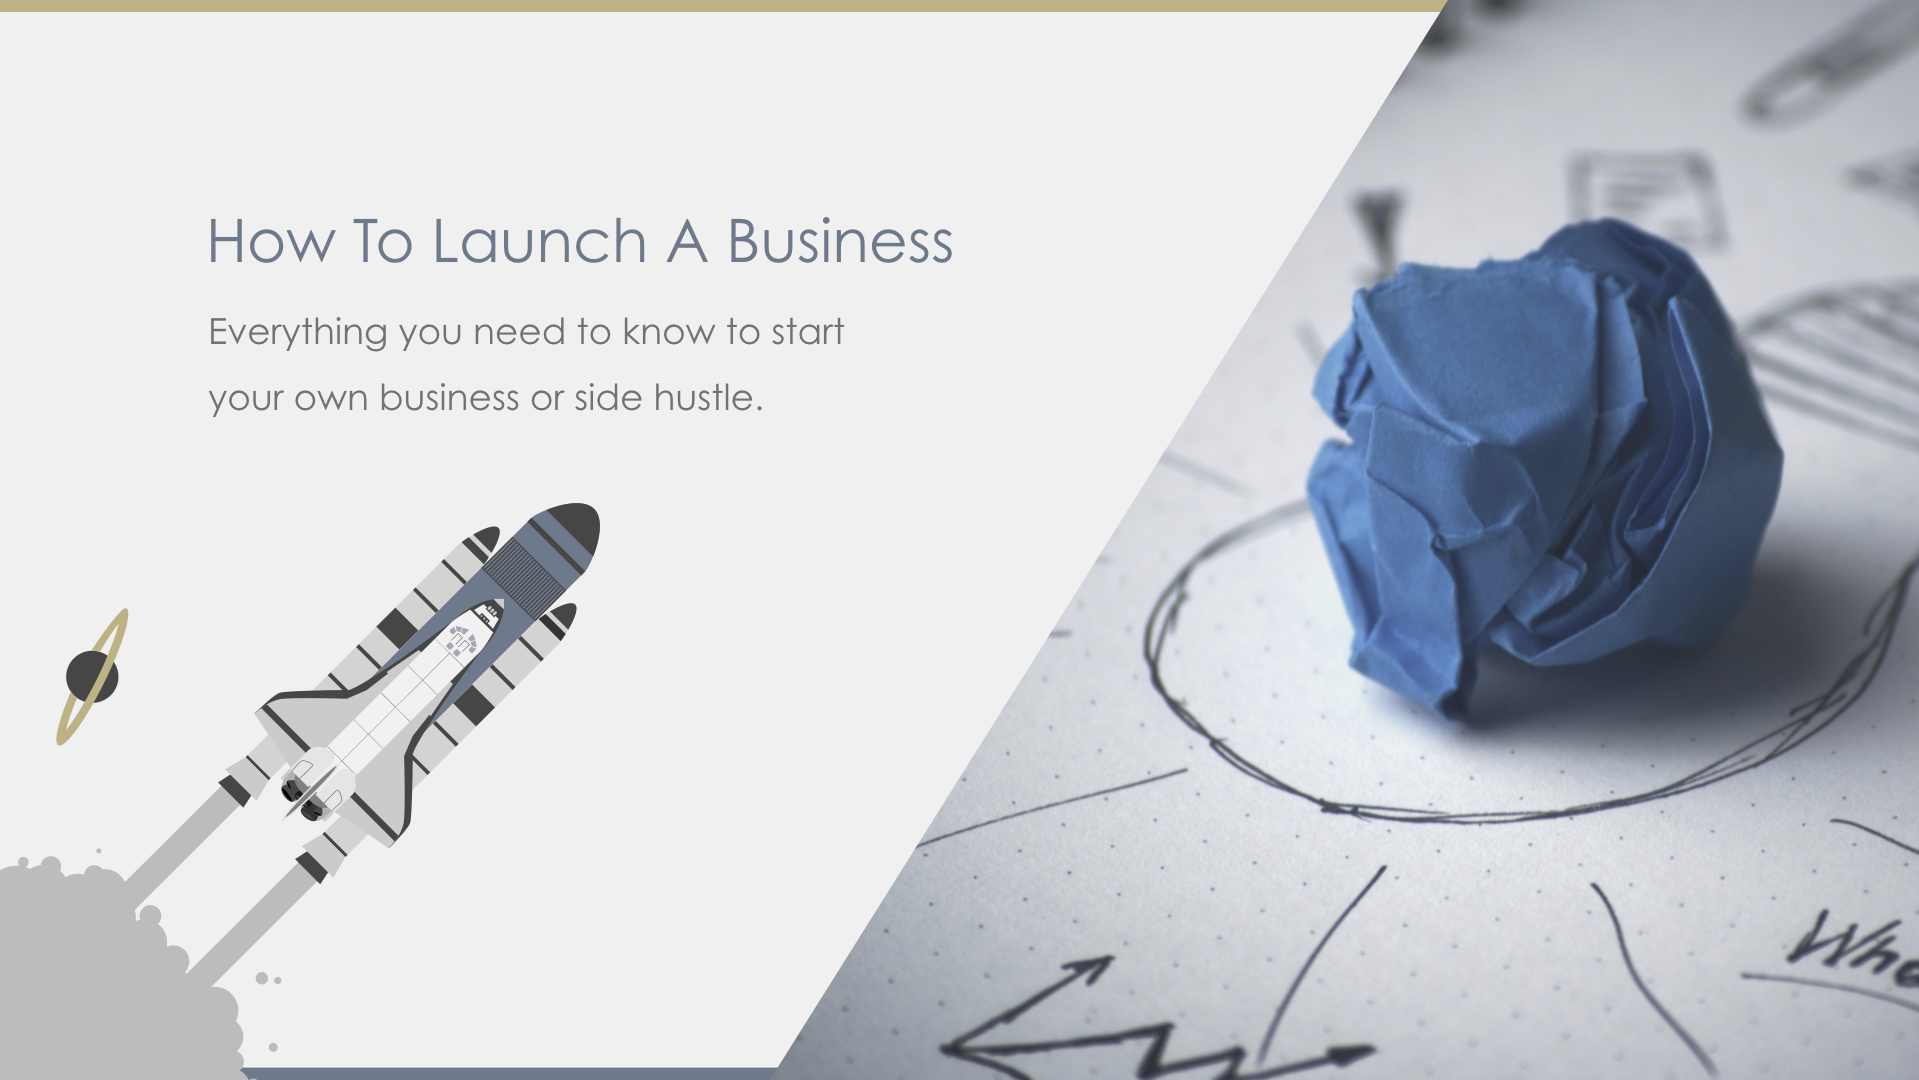 How To Launch A Business Class | The Blessed Business